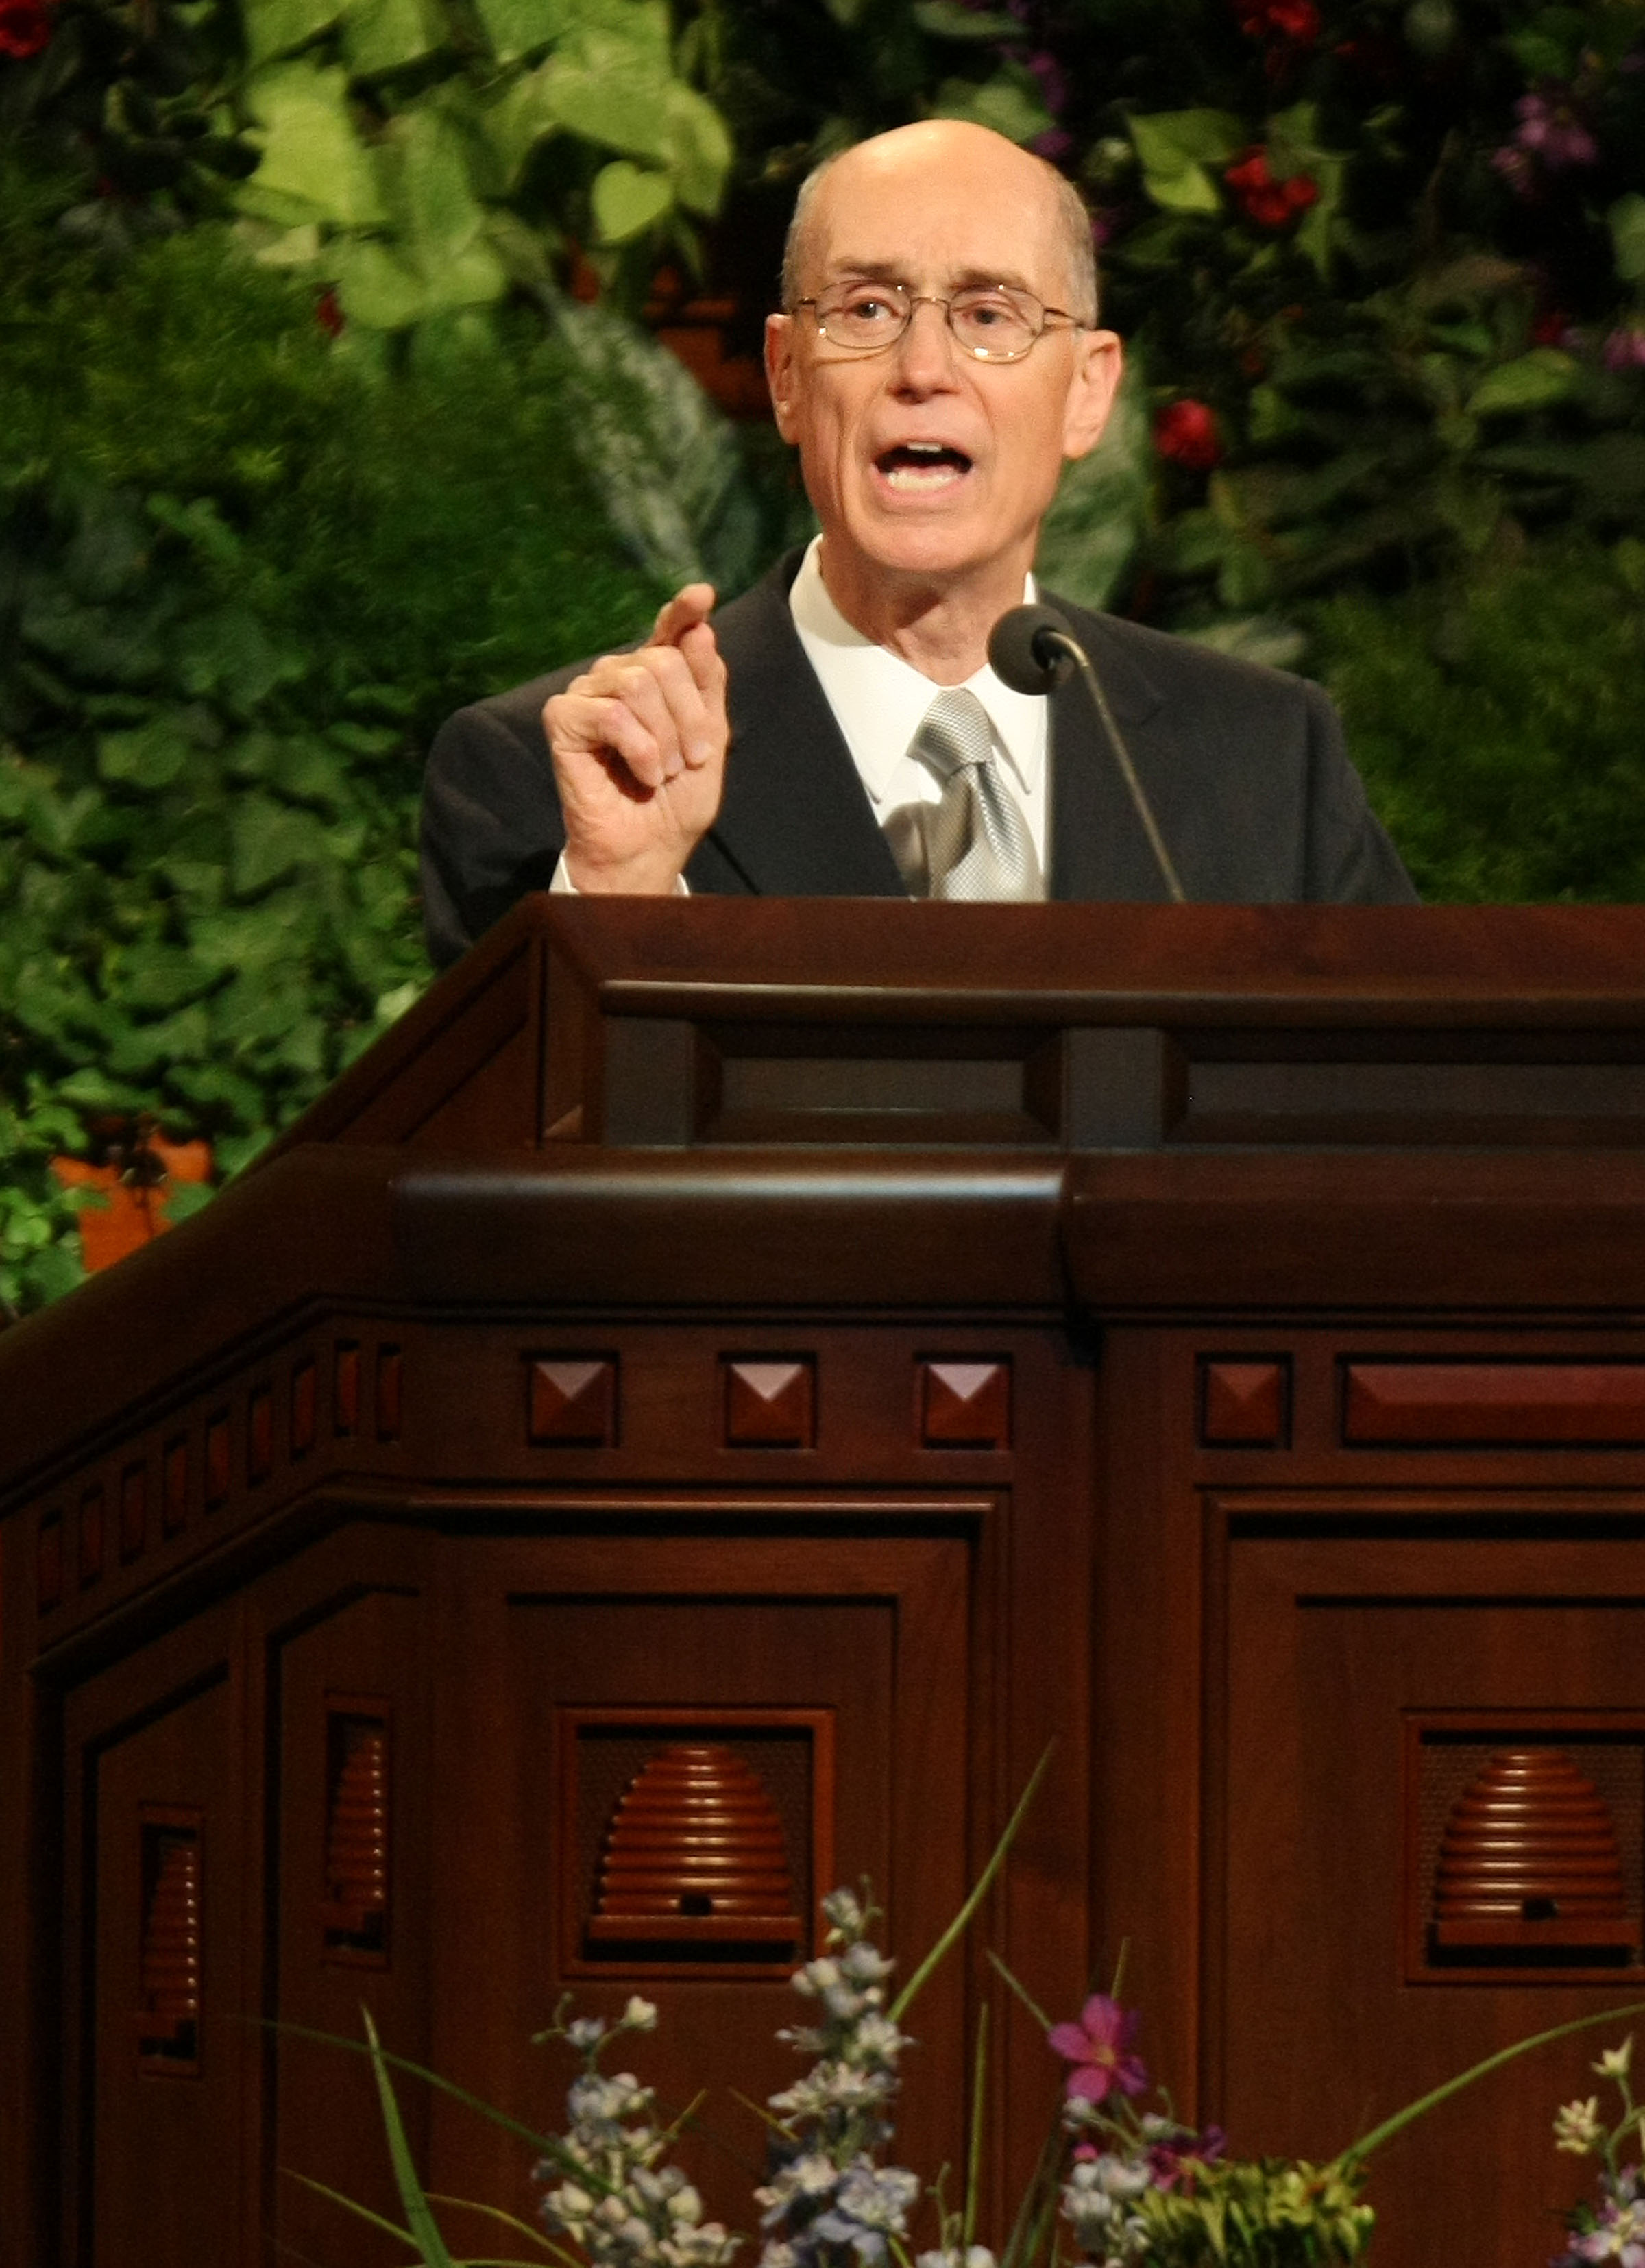 President Henry B. Eyring, first counselor in the First Presidency addresses the audience attending A Celebration of Family History in Salt Lake City, Utah April 29, 2010.